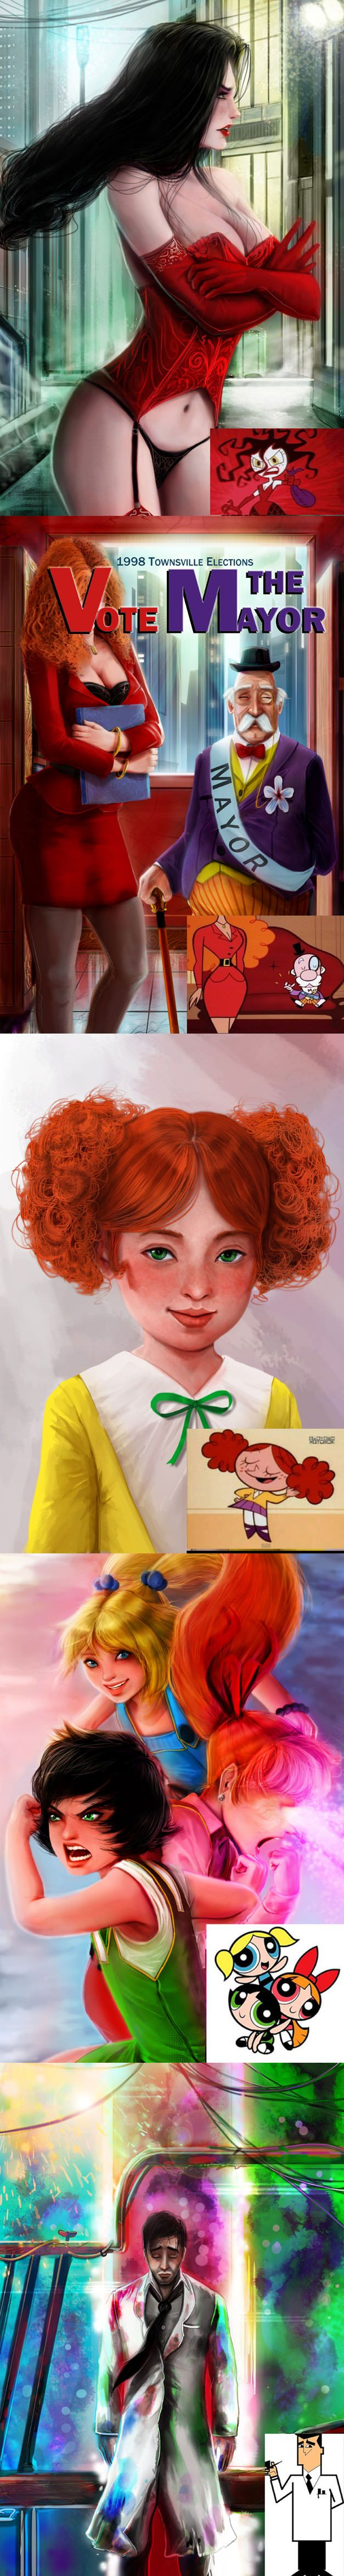 Powerpuff Girls- Realistic Character Artworks